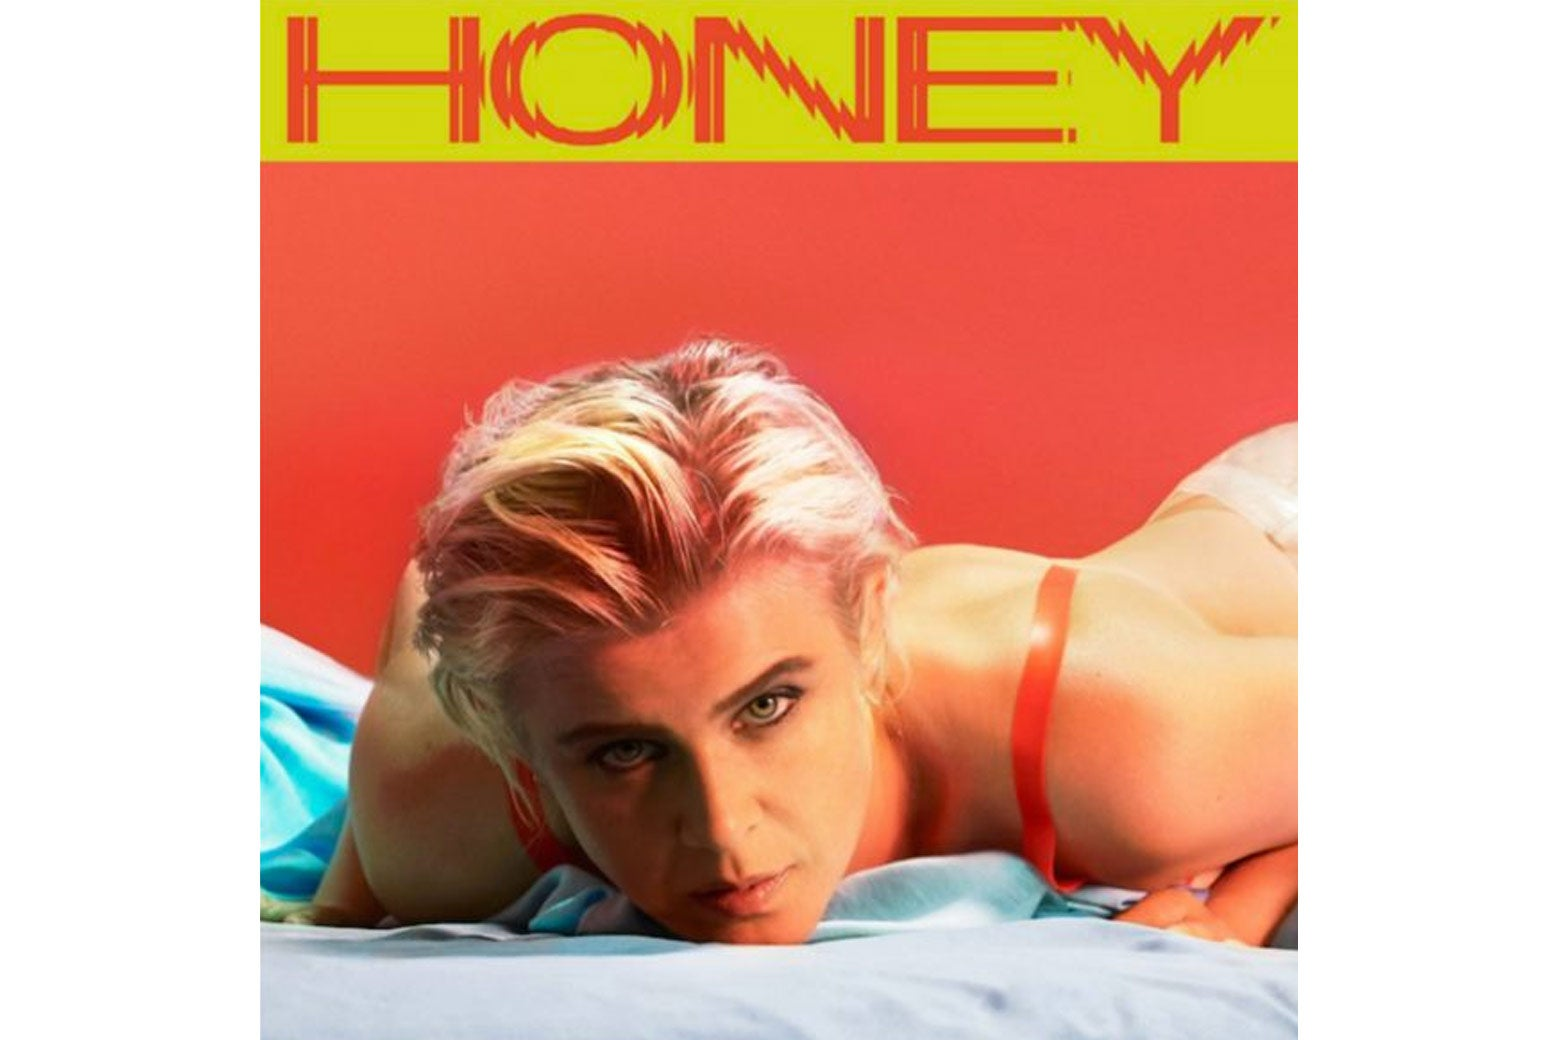 The cover of Robyn's new album, Honey. Robyn is lying on her chest in lingerie, looking forward.